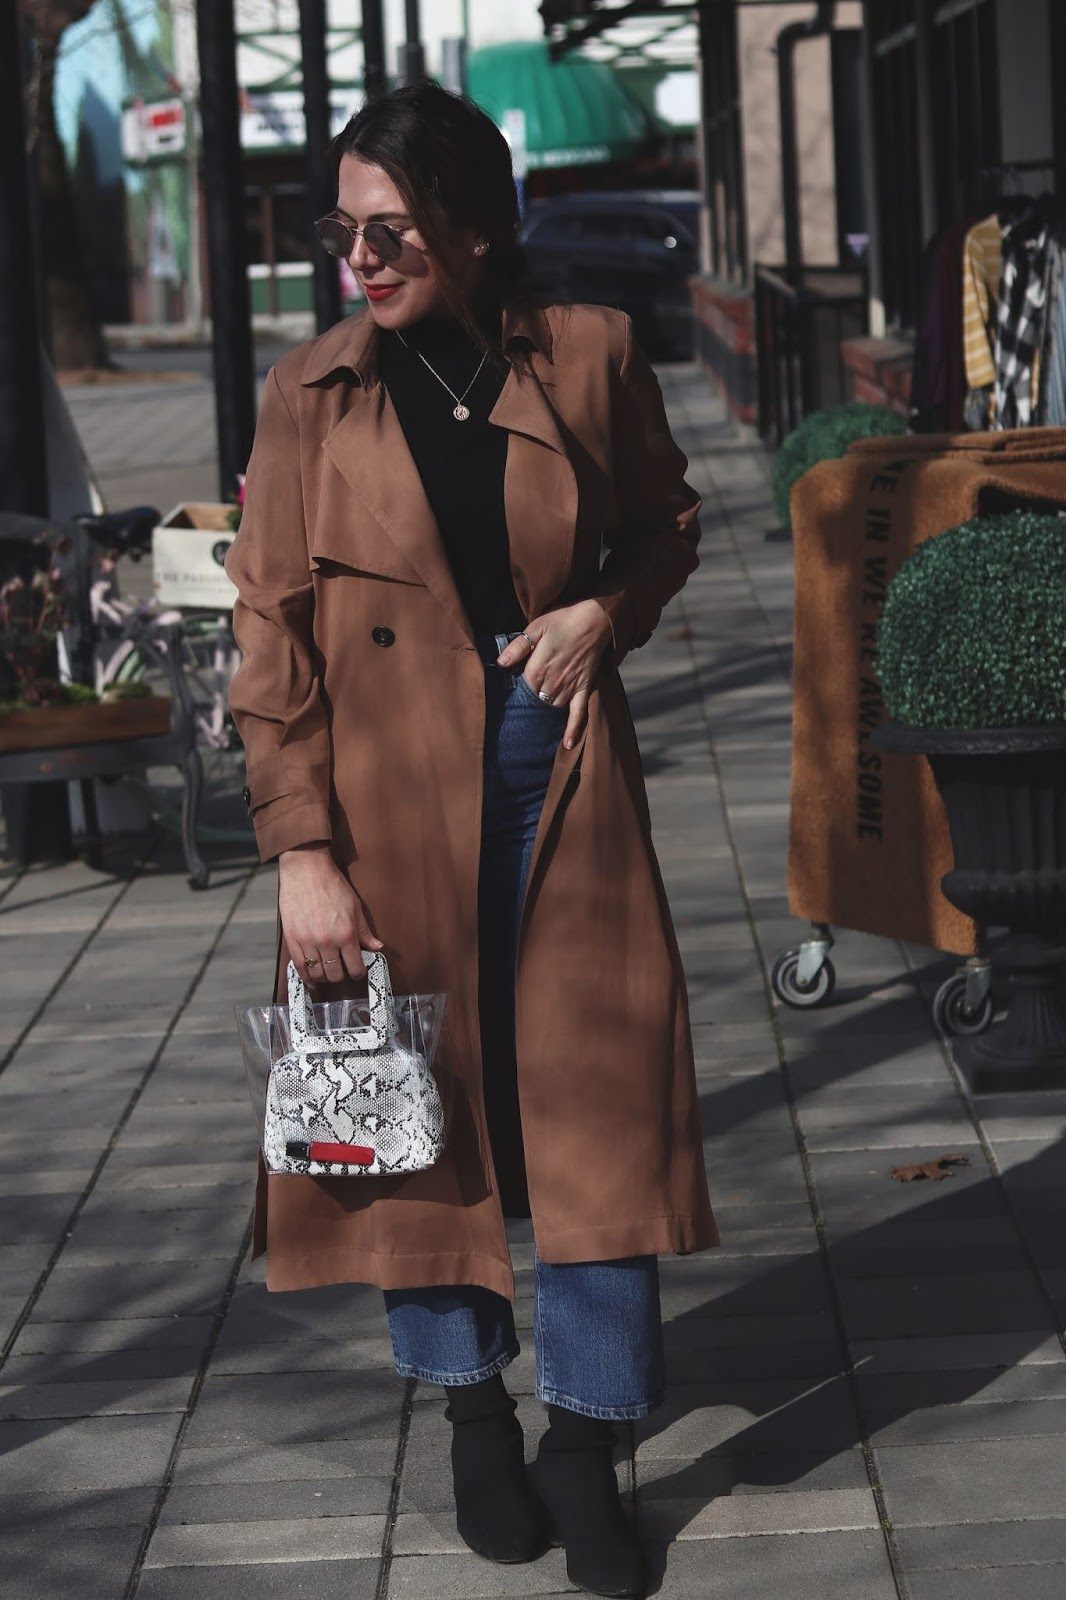 Le Chateau trench coat spring outfit idea levi's ribcage jeans bailey nelson sunglasses vancouver blogger aleesha harris